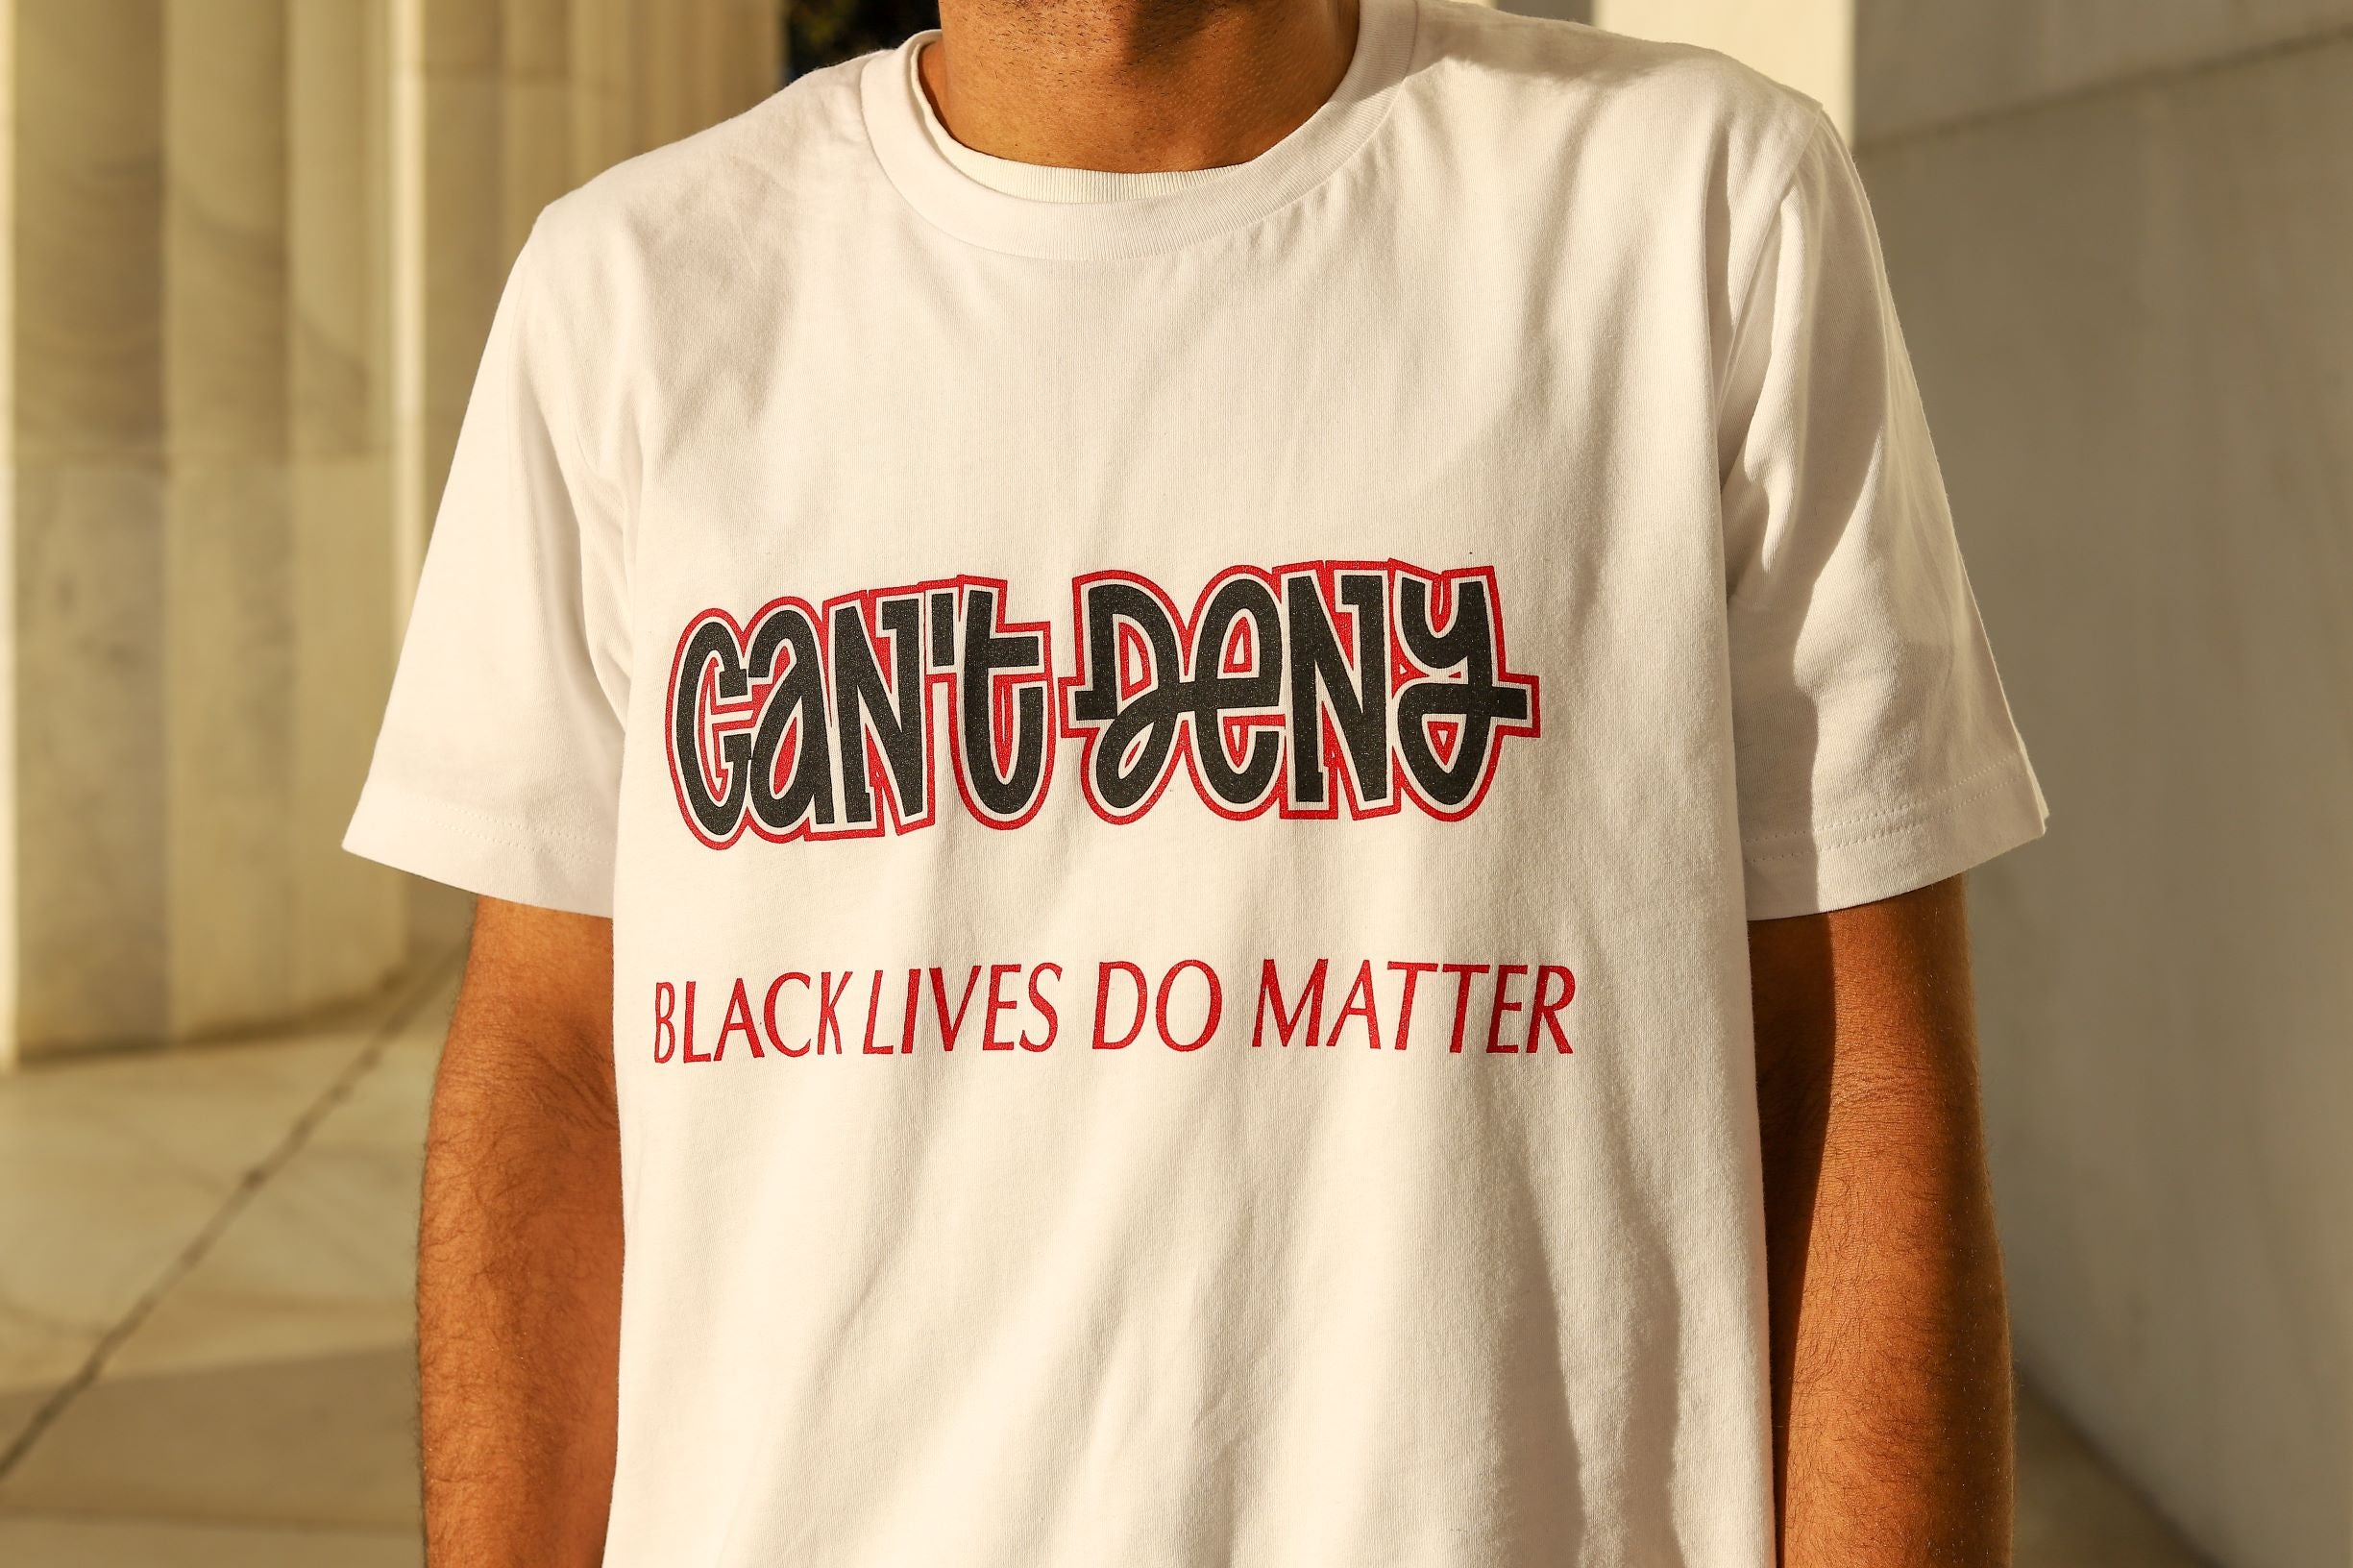 Statement Tee - Black Lives Do Matter